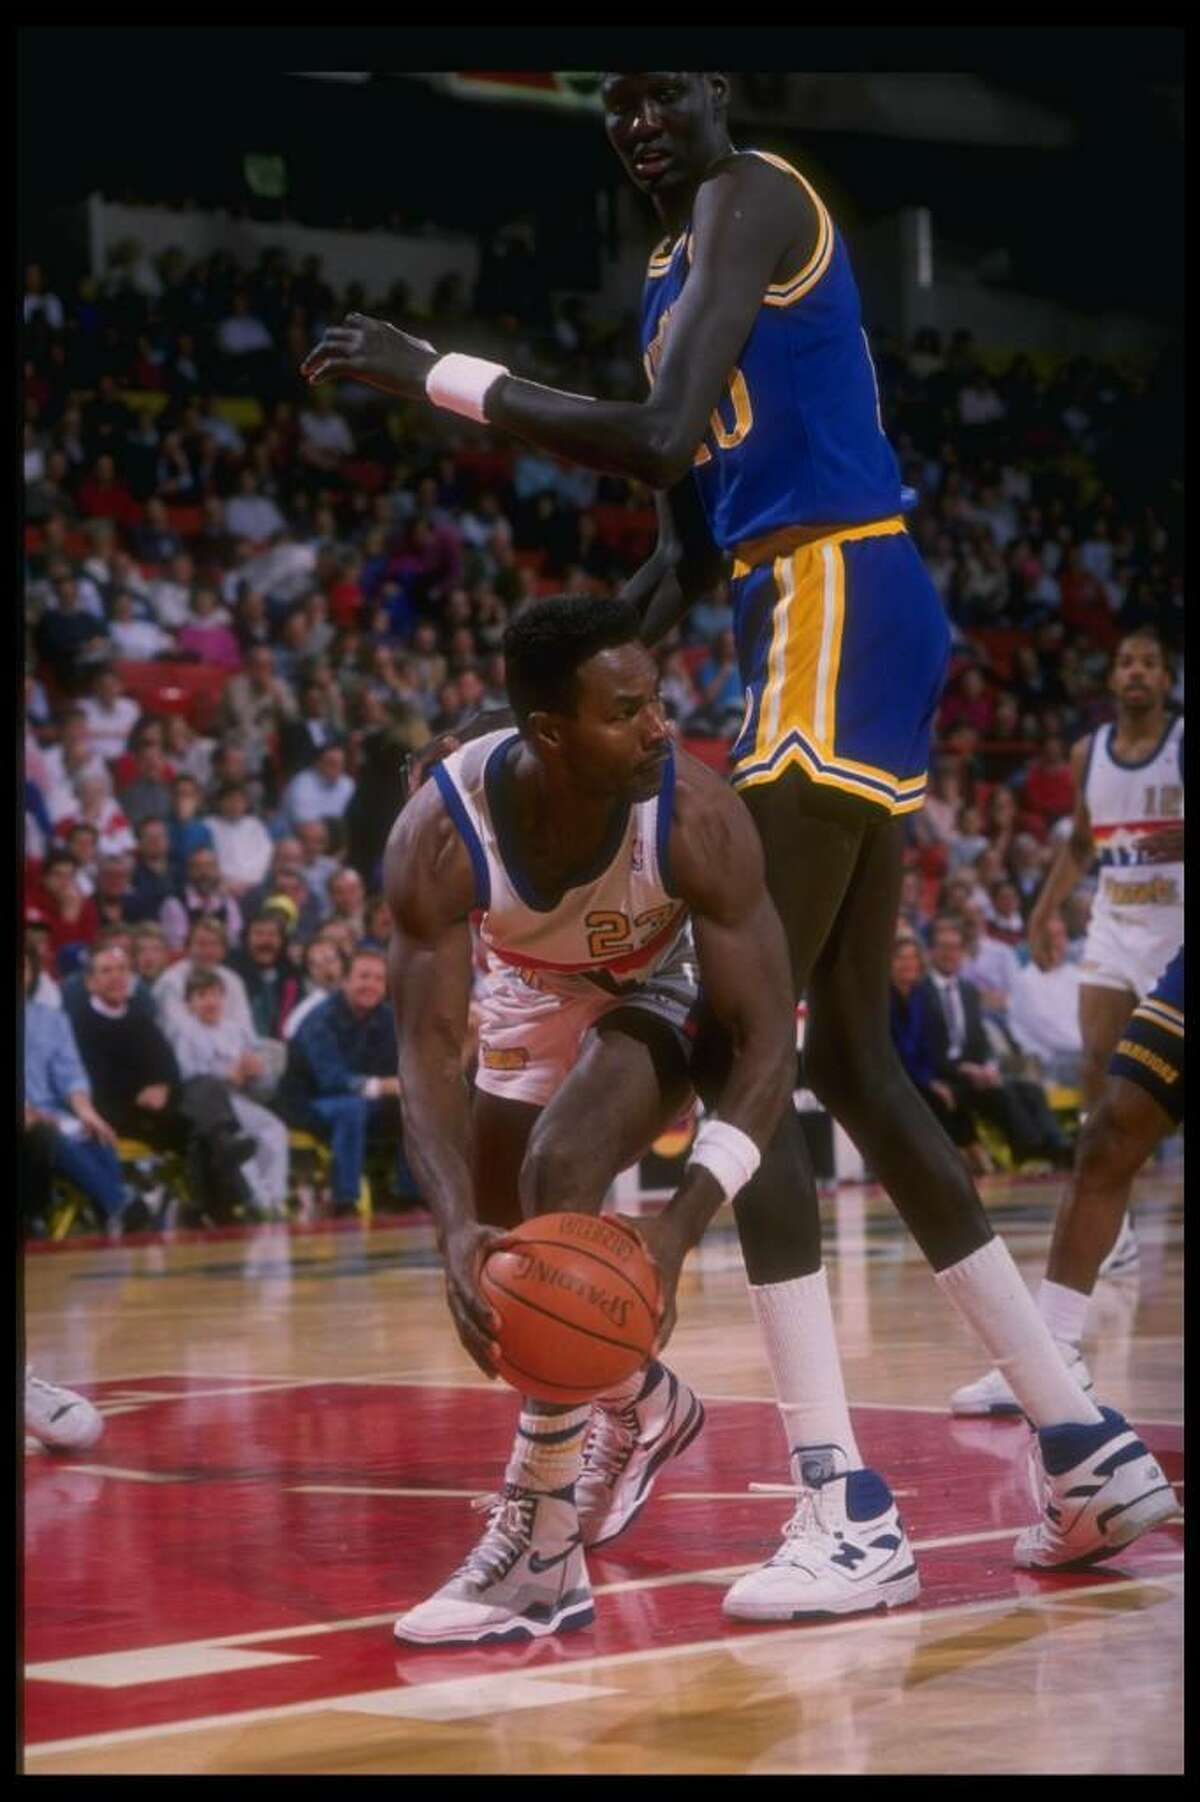 1989-1990: T. R. Dunn of the Denver Nuggets looks to pass around center Manute Bol of the Golden State Warriors during a Nuggets game versus the Warriors at the McNichols Sports Arena in Denver, Colorado. Mandatory Credit: Tim DeFrisco /Allsport Mandato